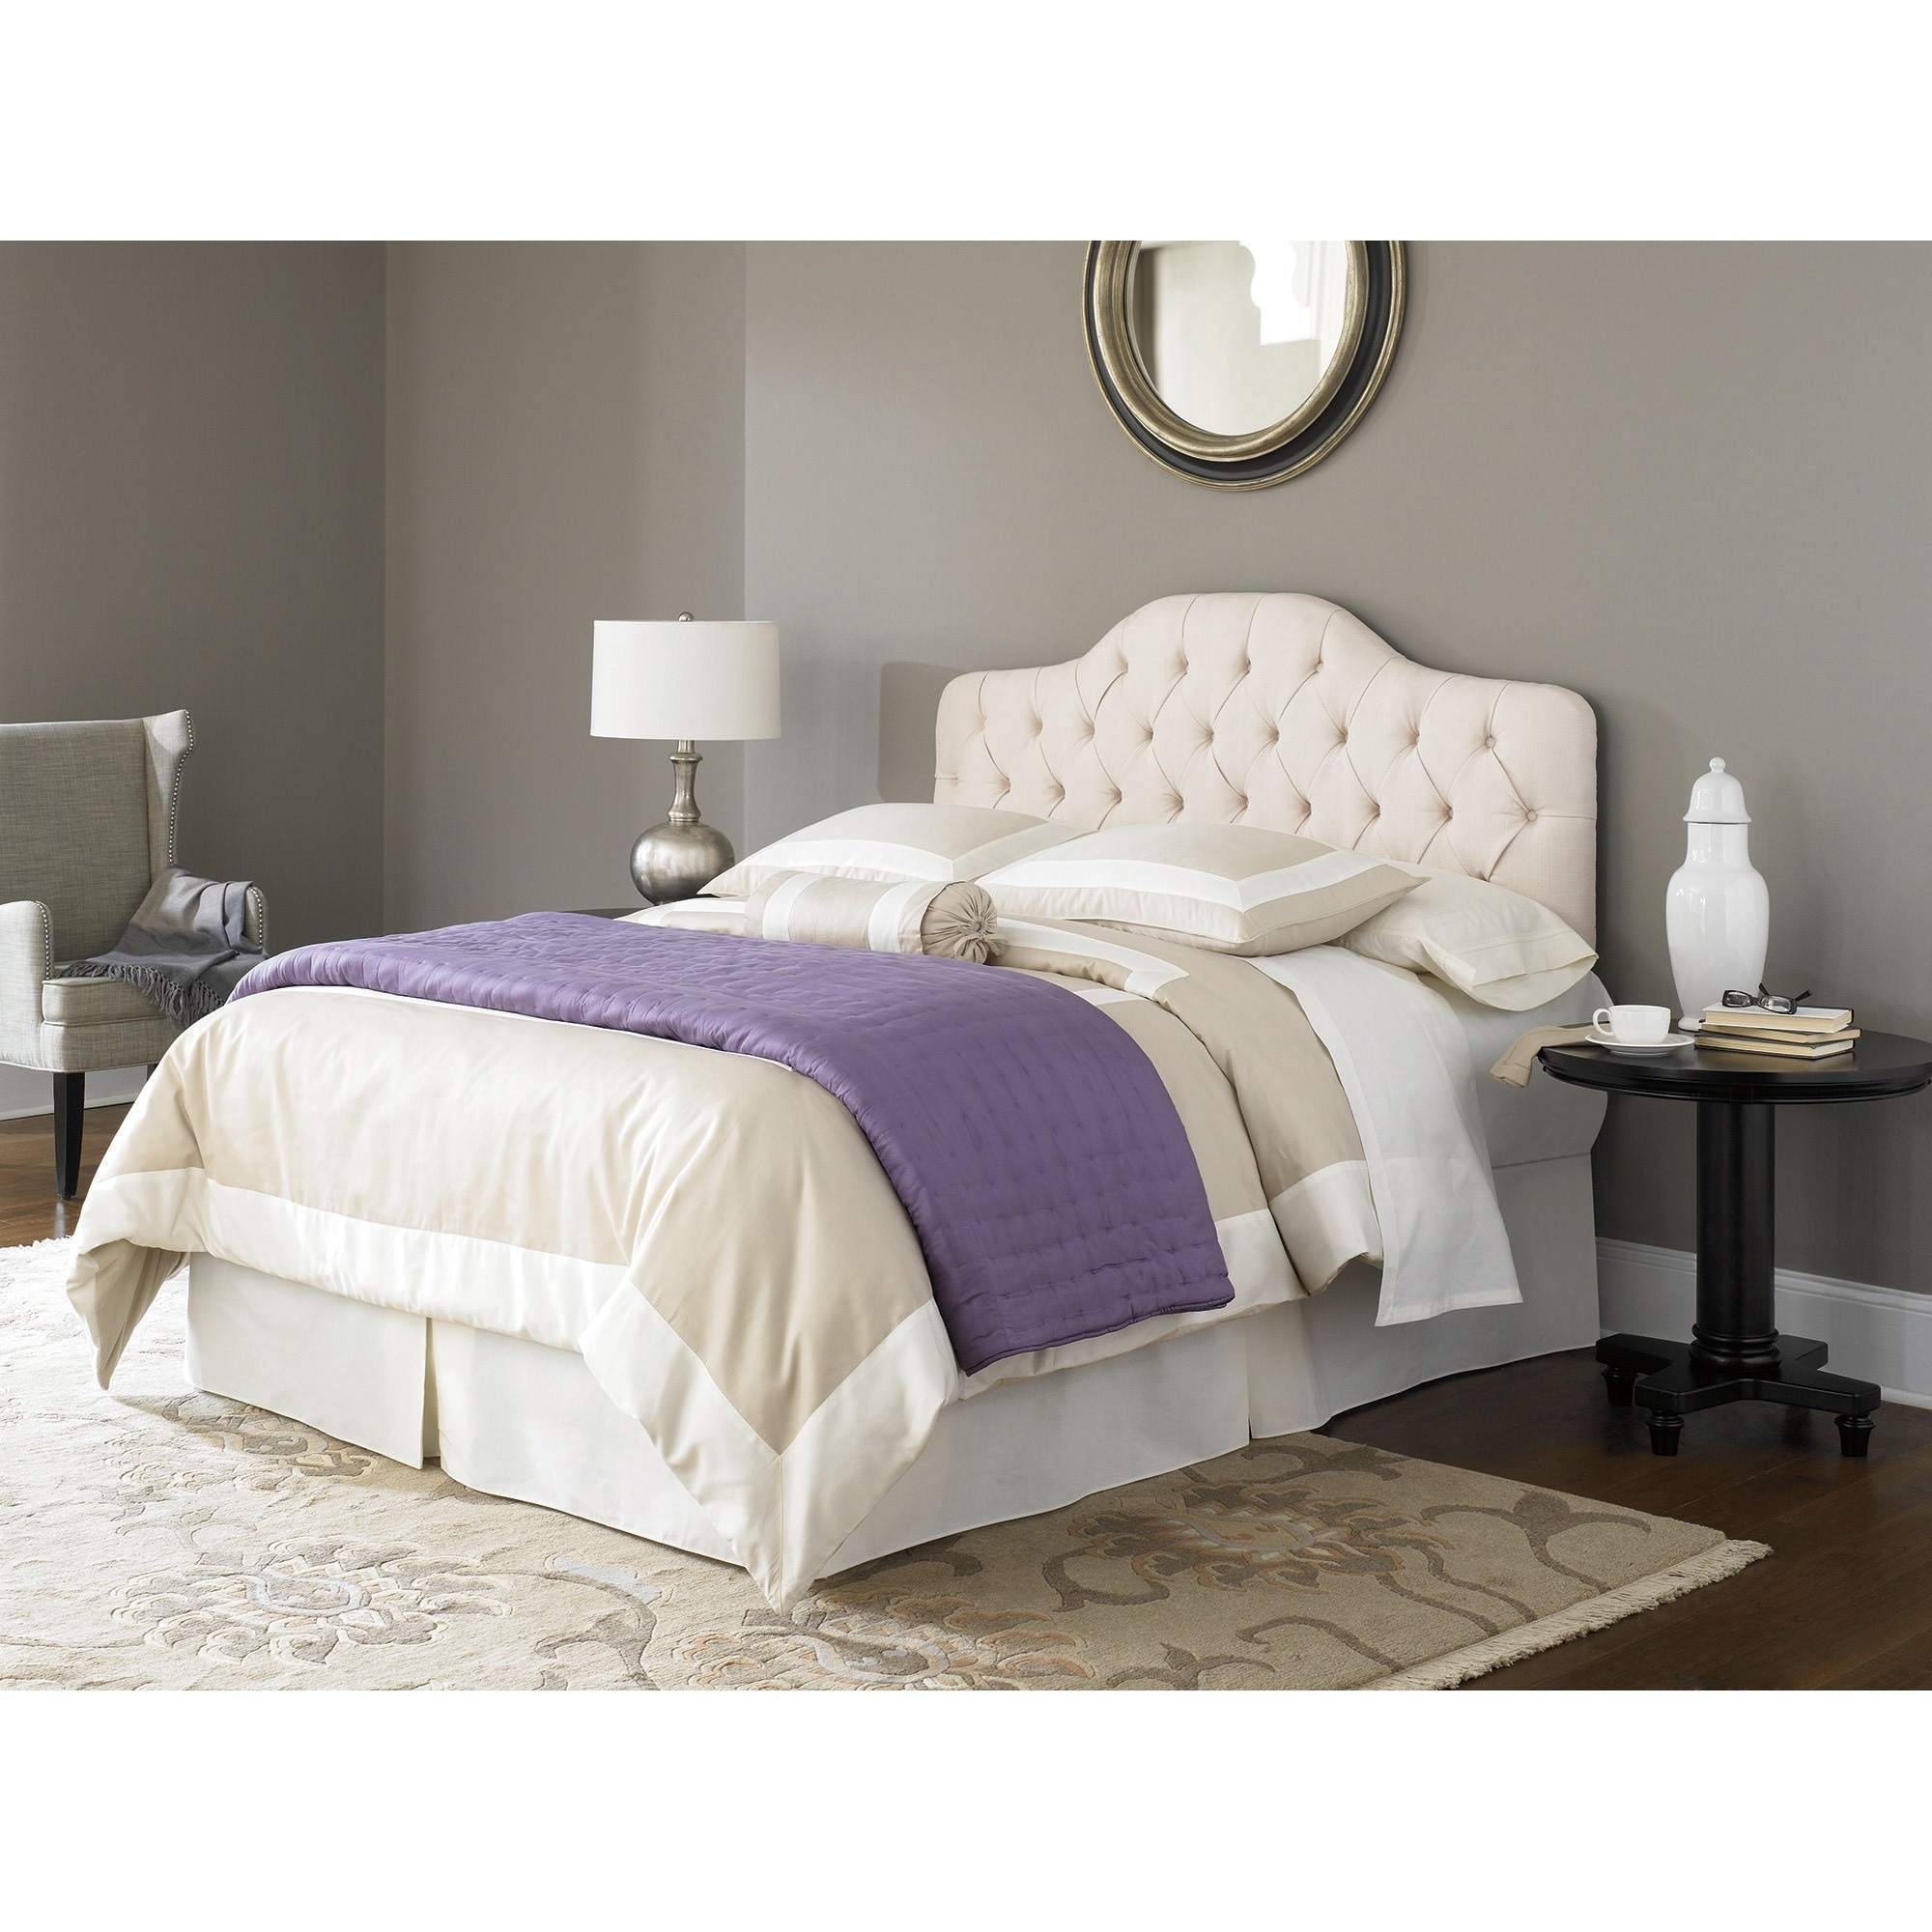 Fashion Bed Group Saint Lucia Ivory Upholstered Headboard...